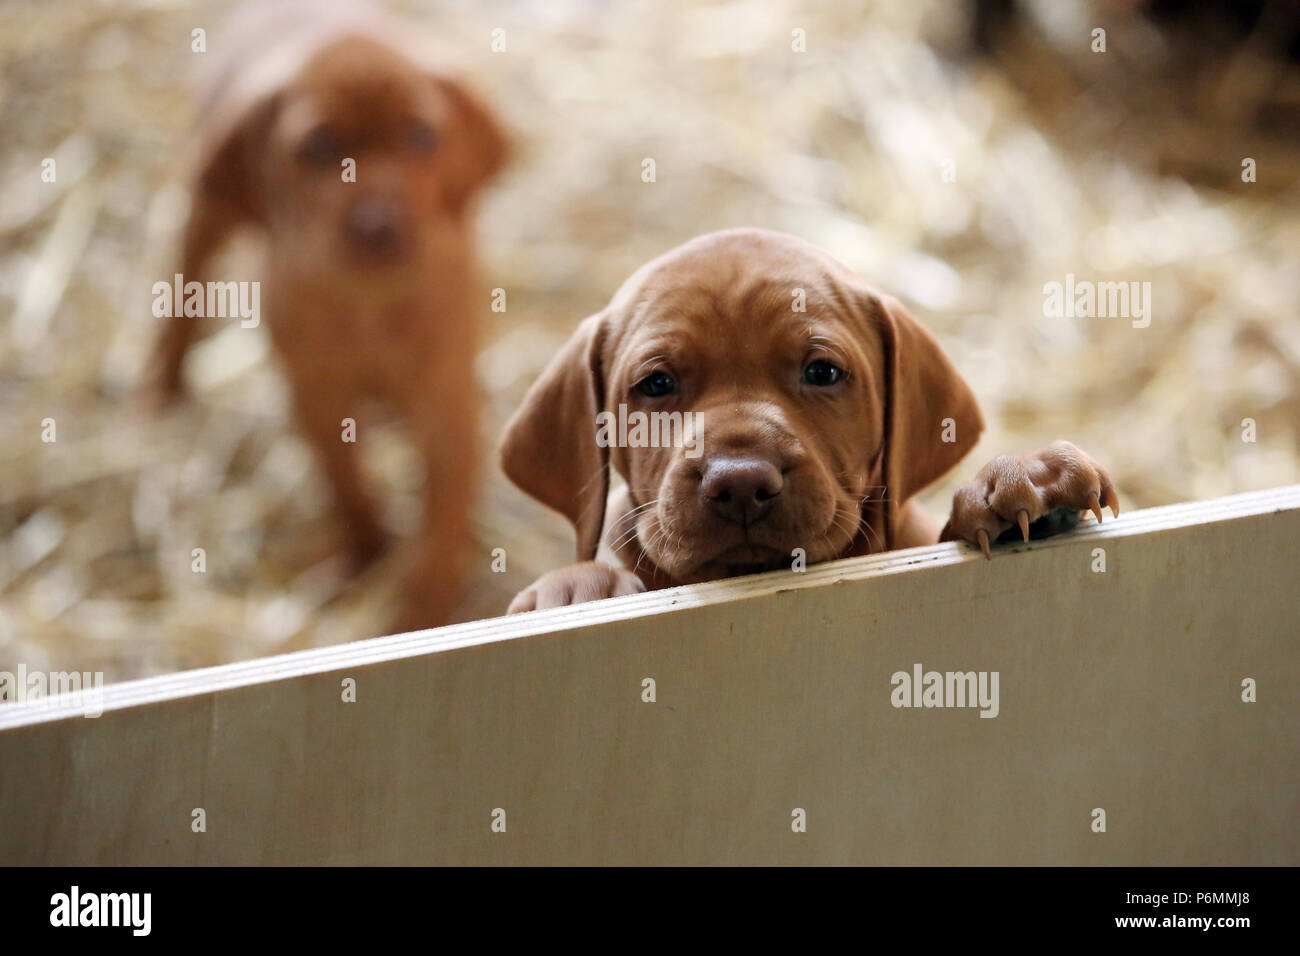 Neuenhagen, Germany, Magyar Vizsla Hundewelpe looks curiously out of a throwing box - Stock Image